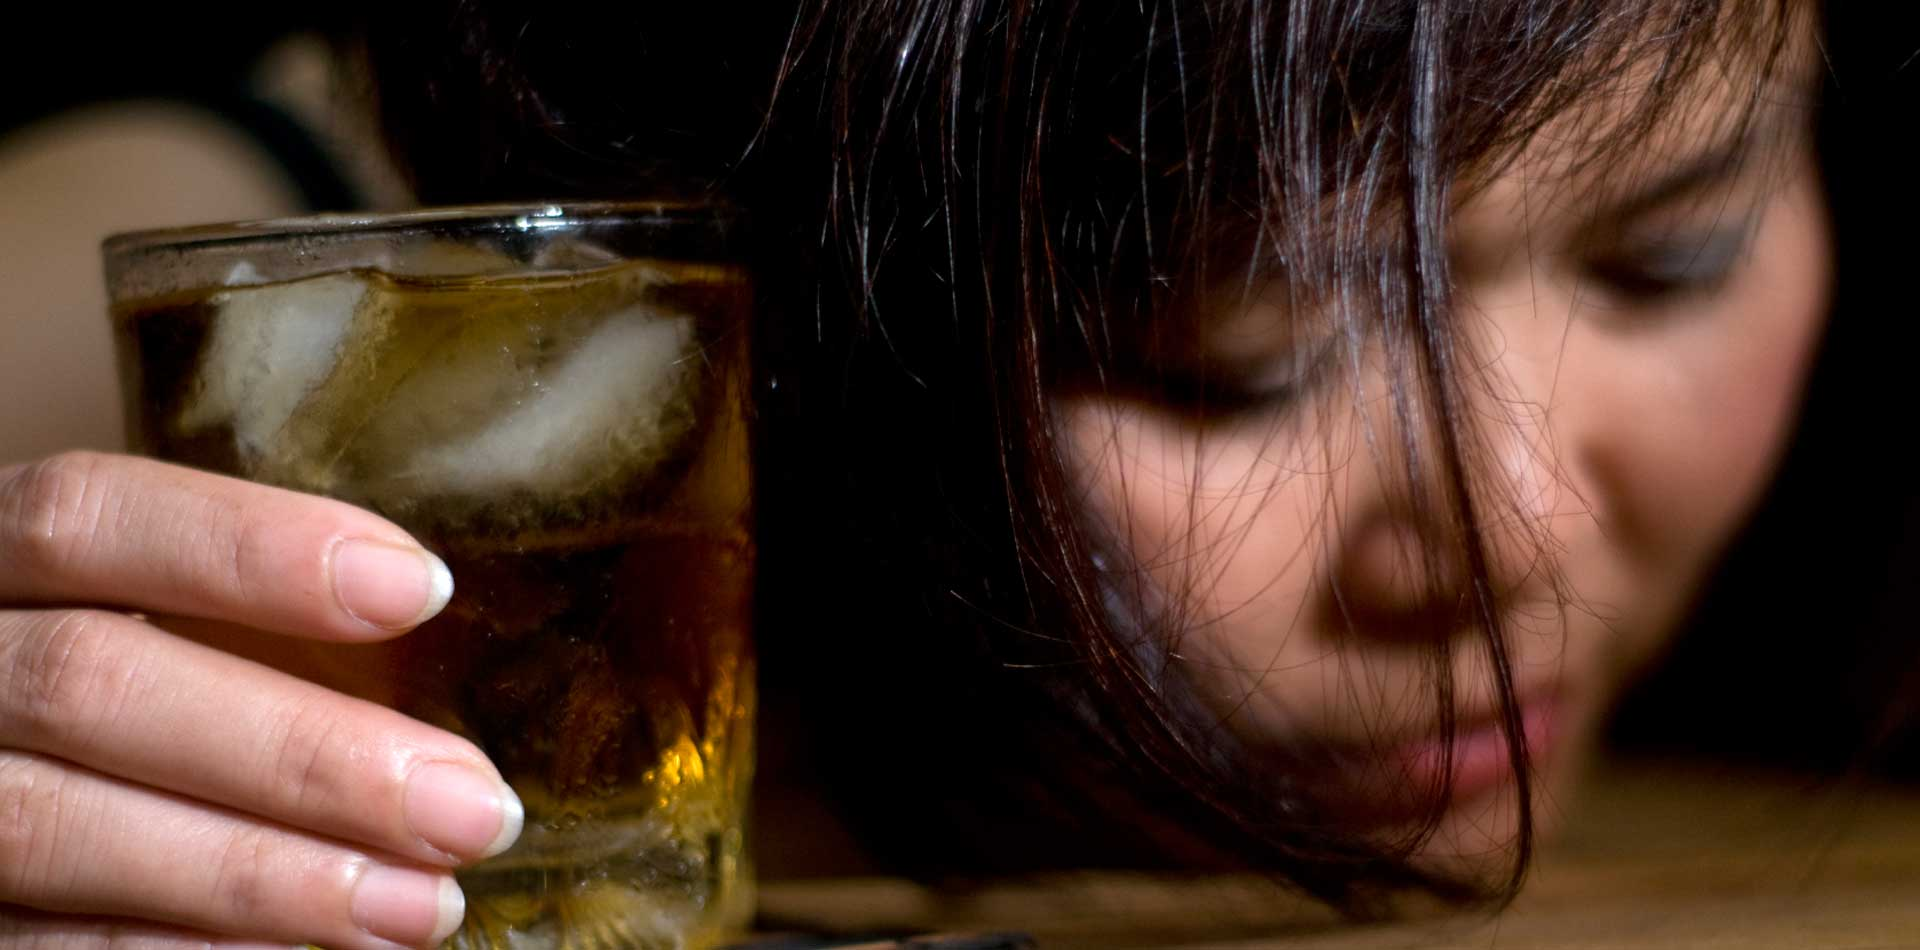 Alcohol Abuse Video